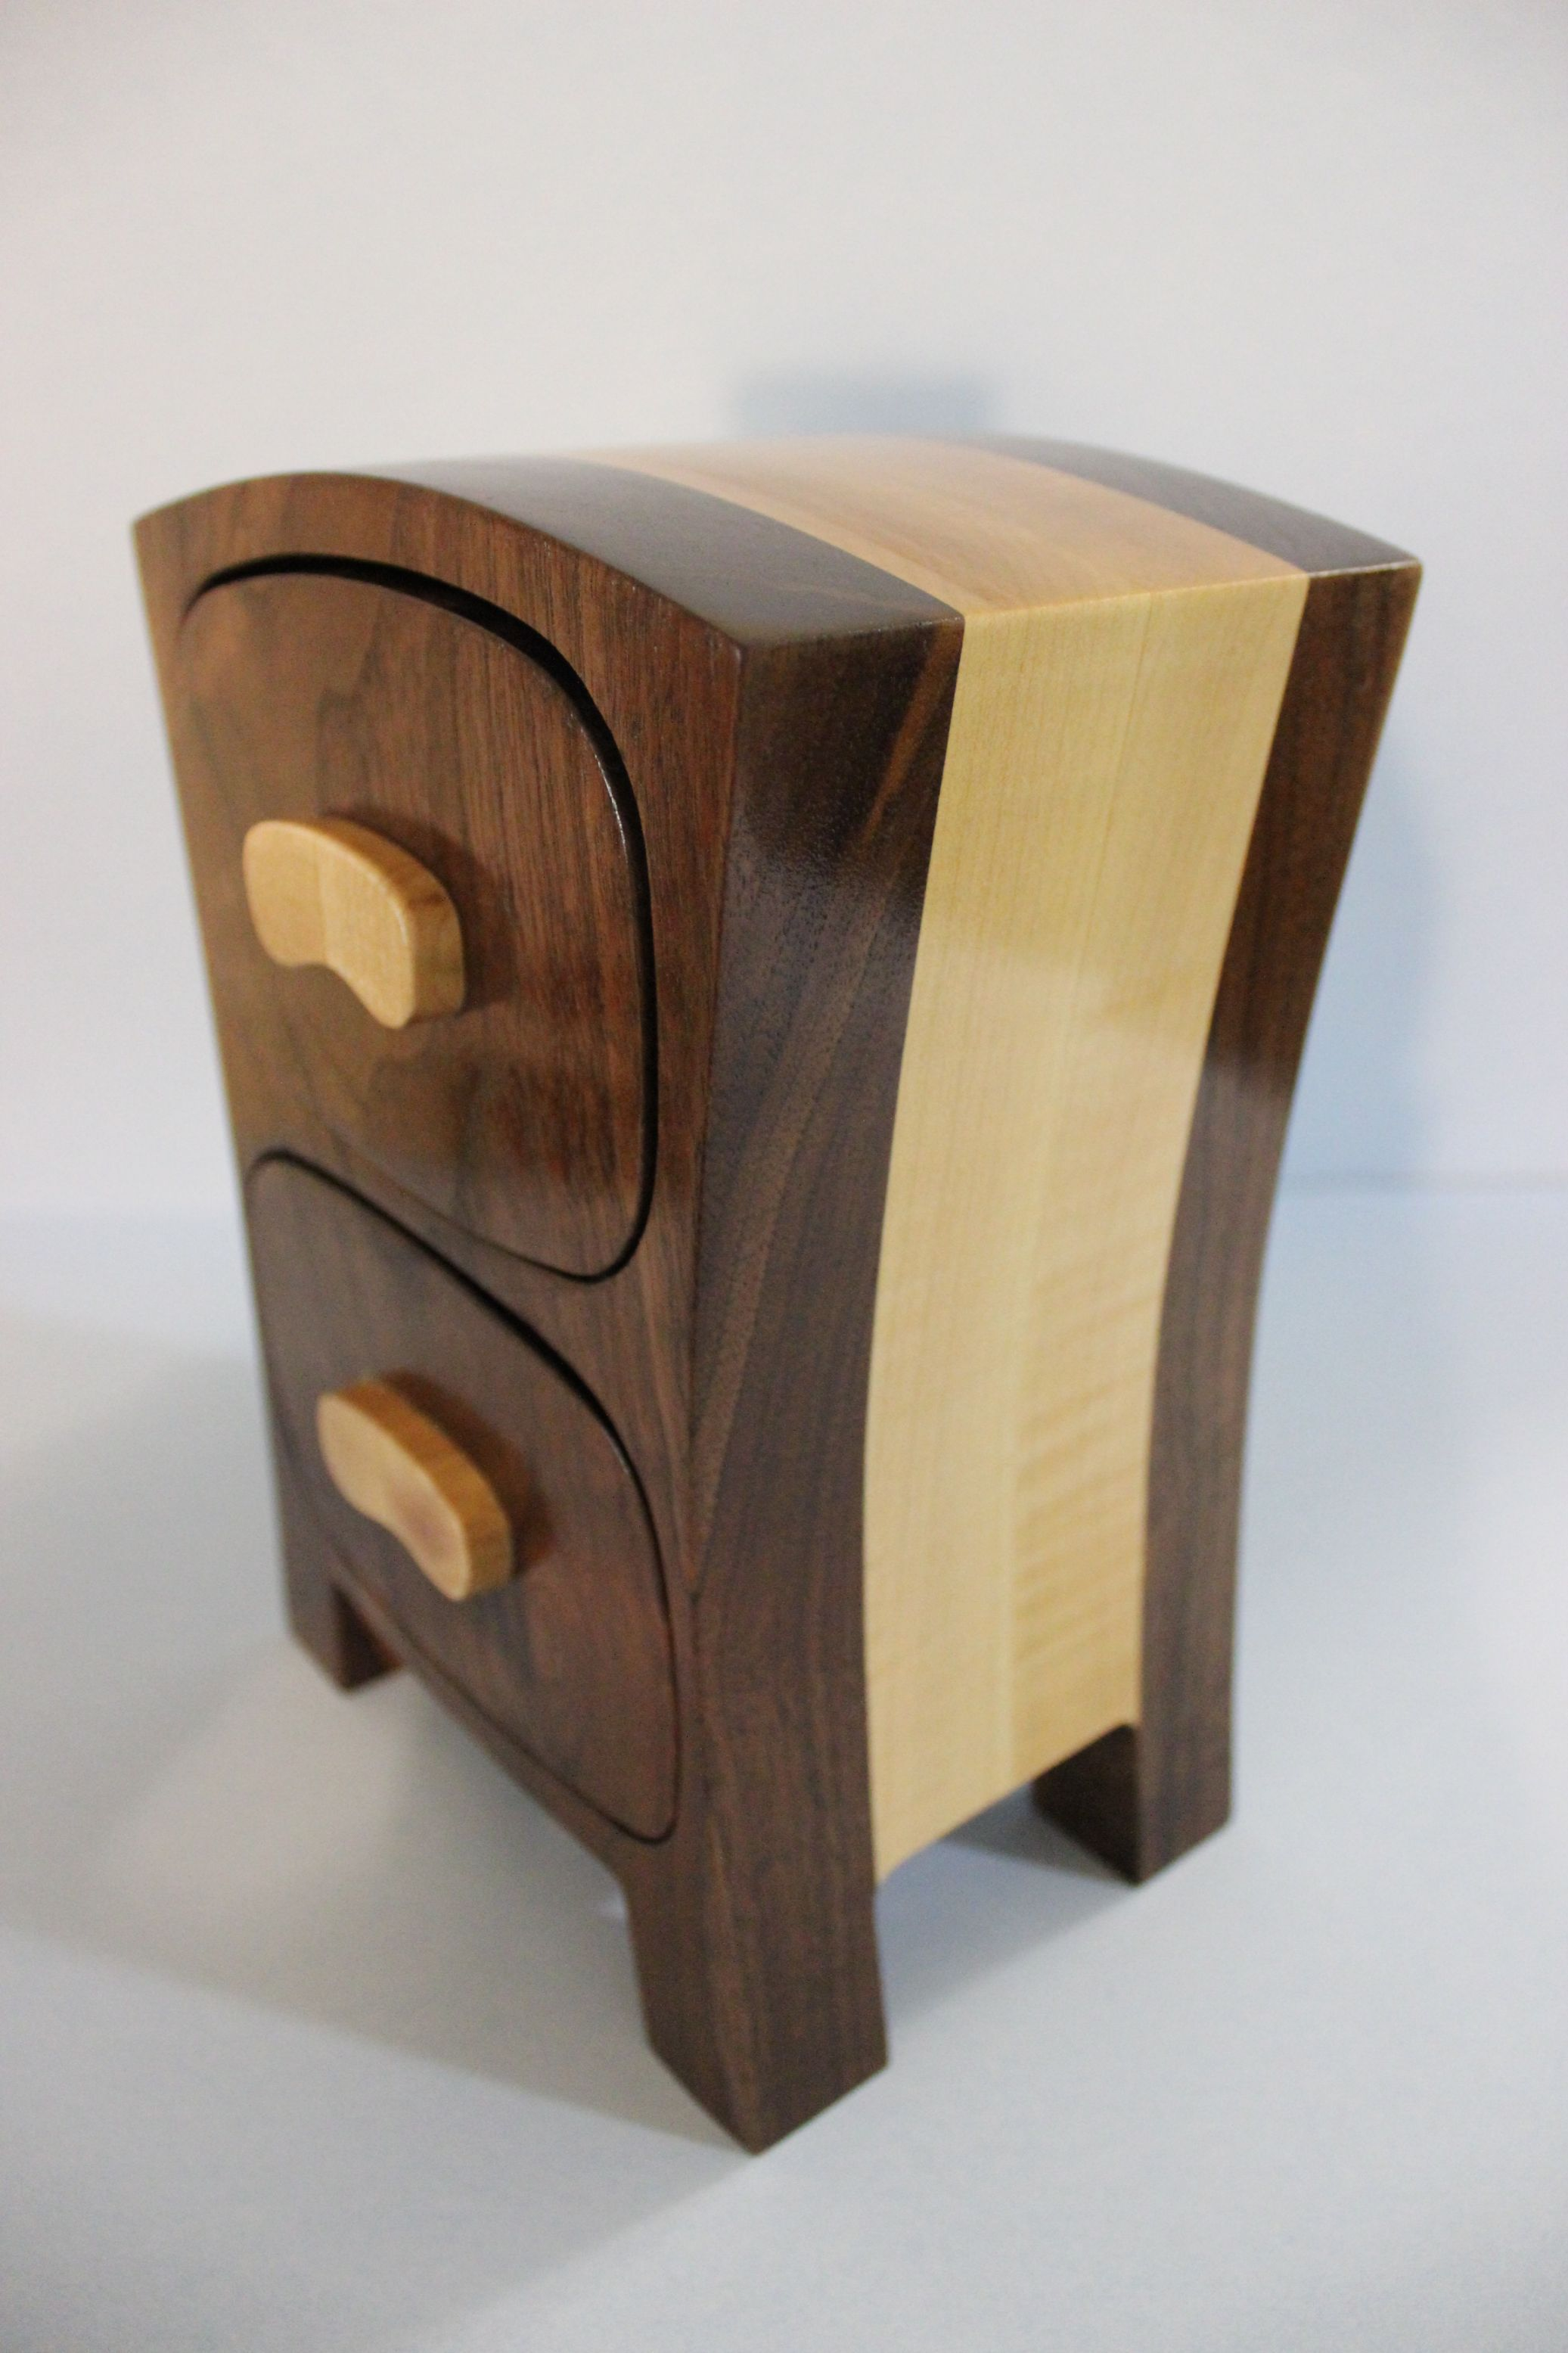 bandsaw boxes | bandsaw / wooden boxes/bowls in 2019